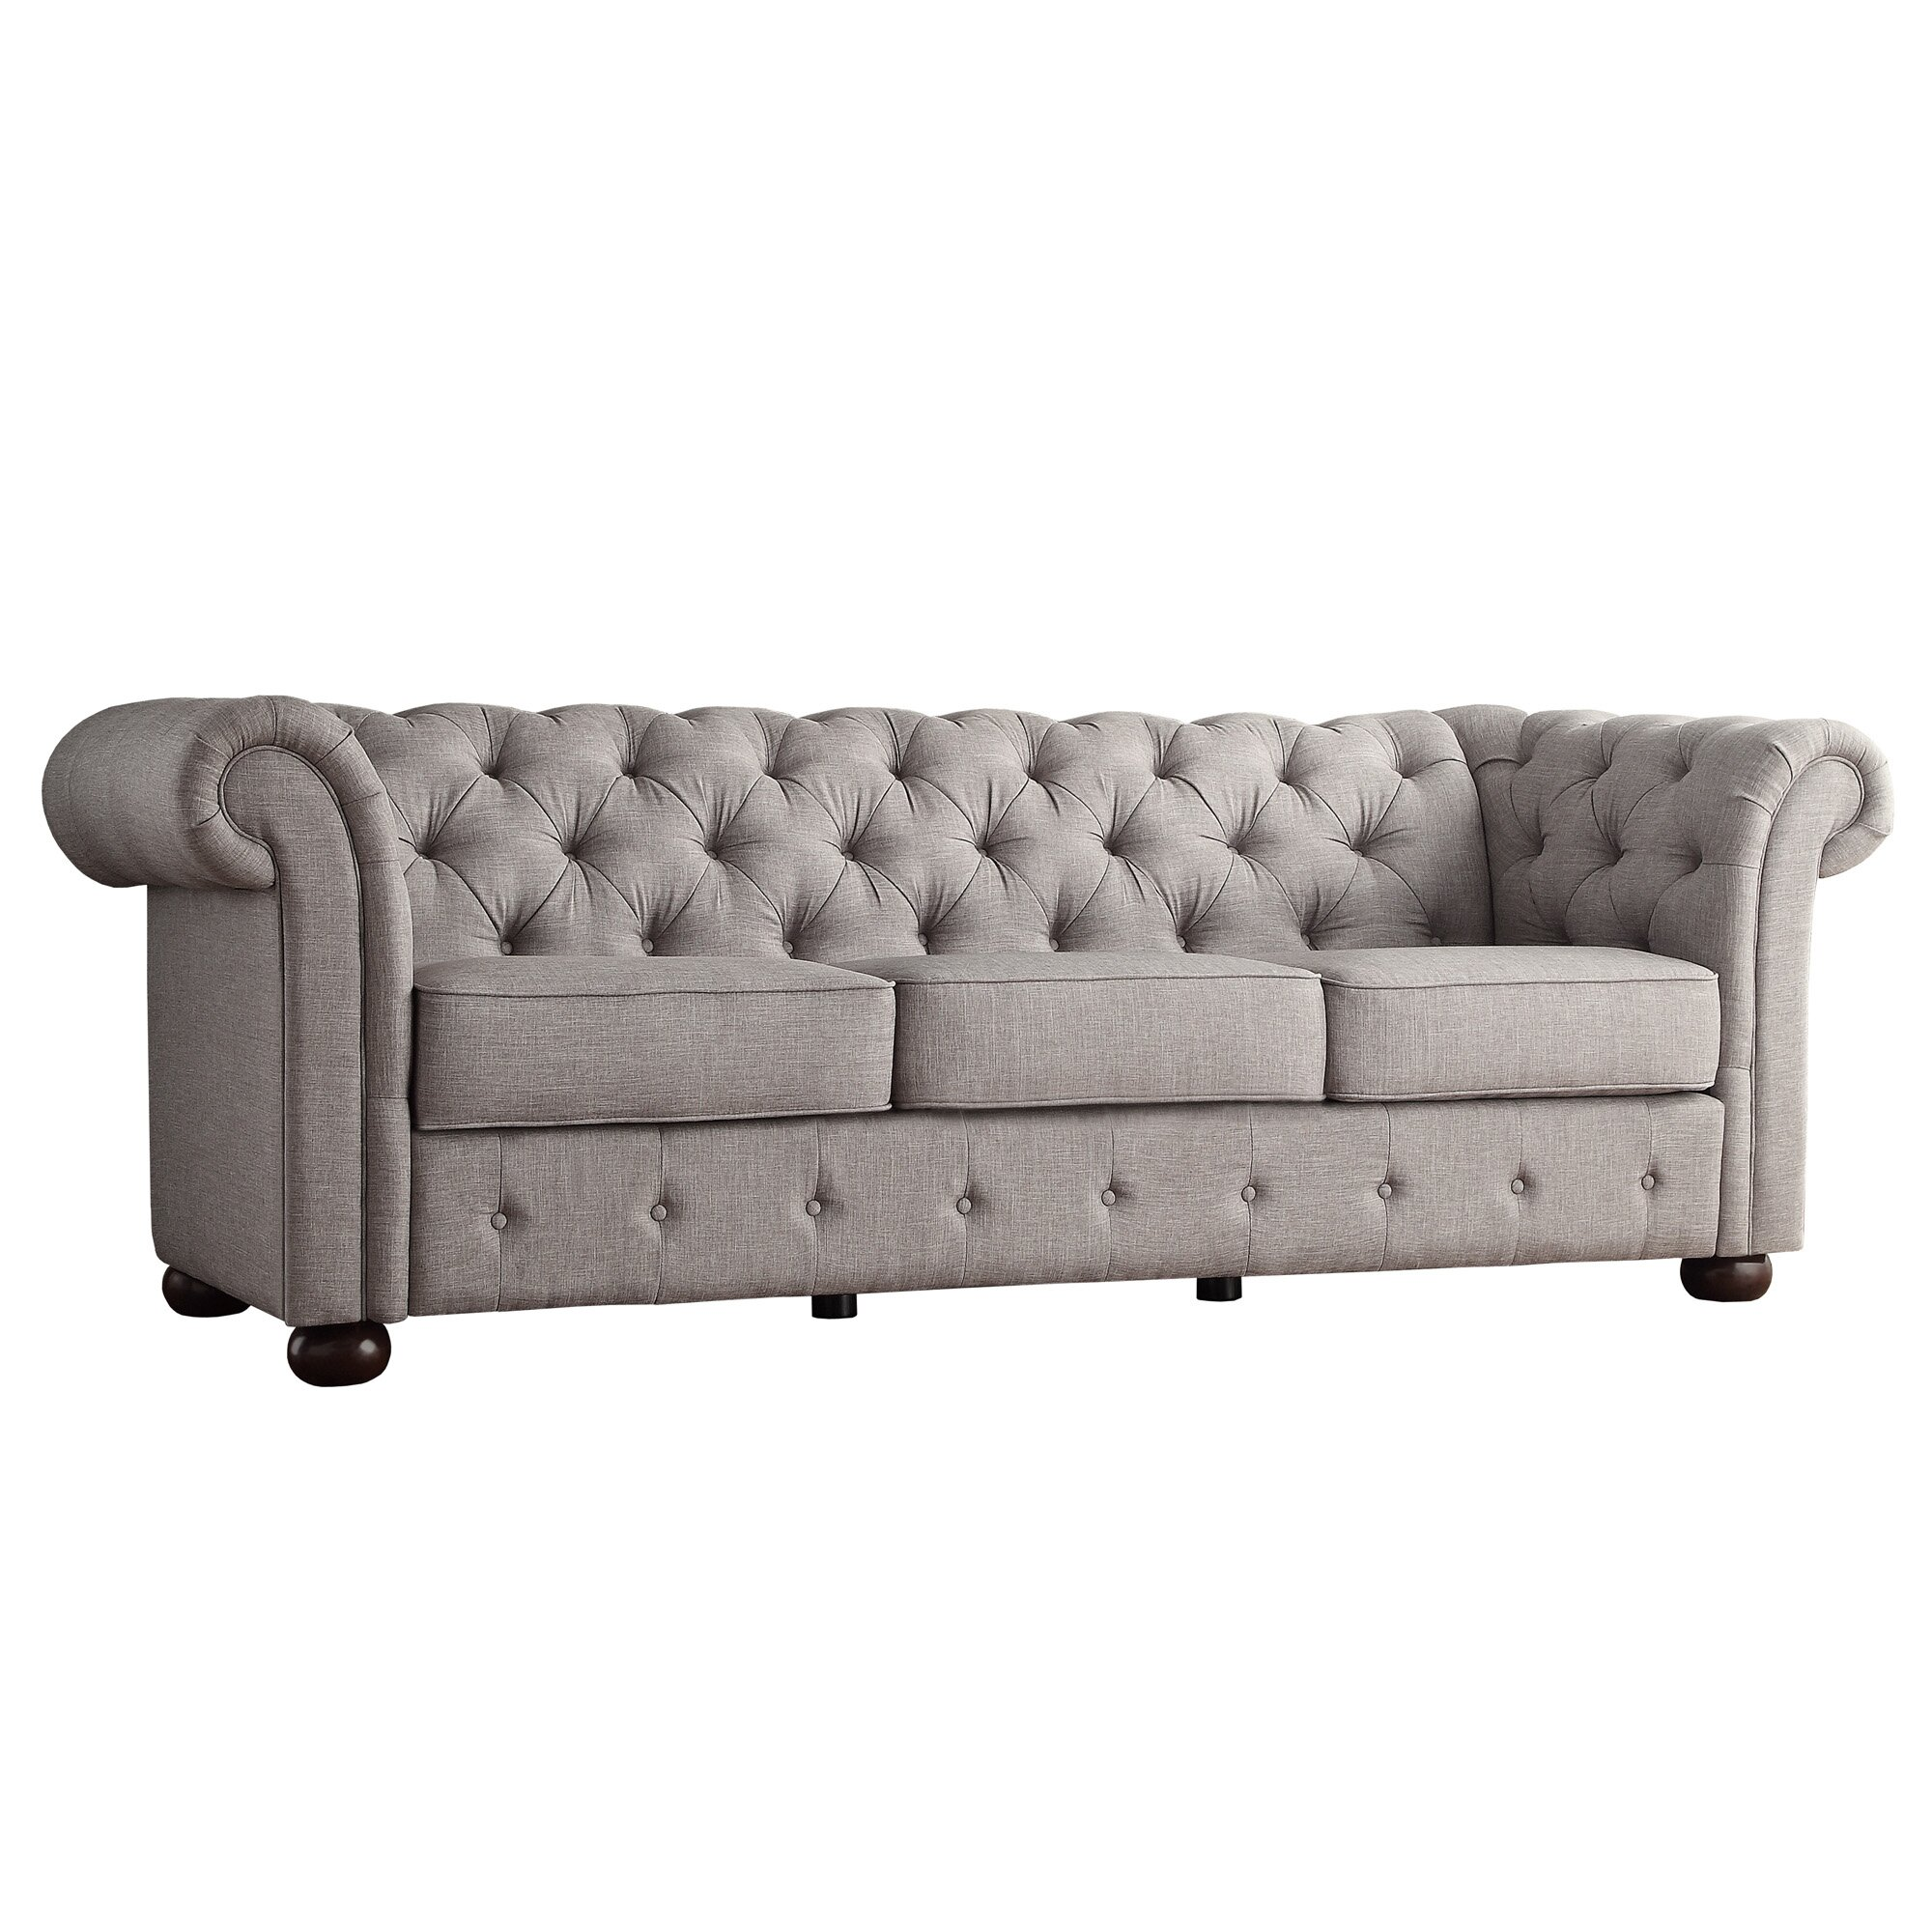 Darby home co conners tufted sofa reviews wayfair for Sofa company